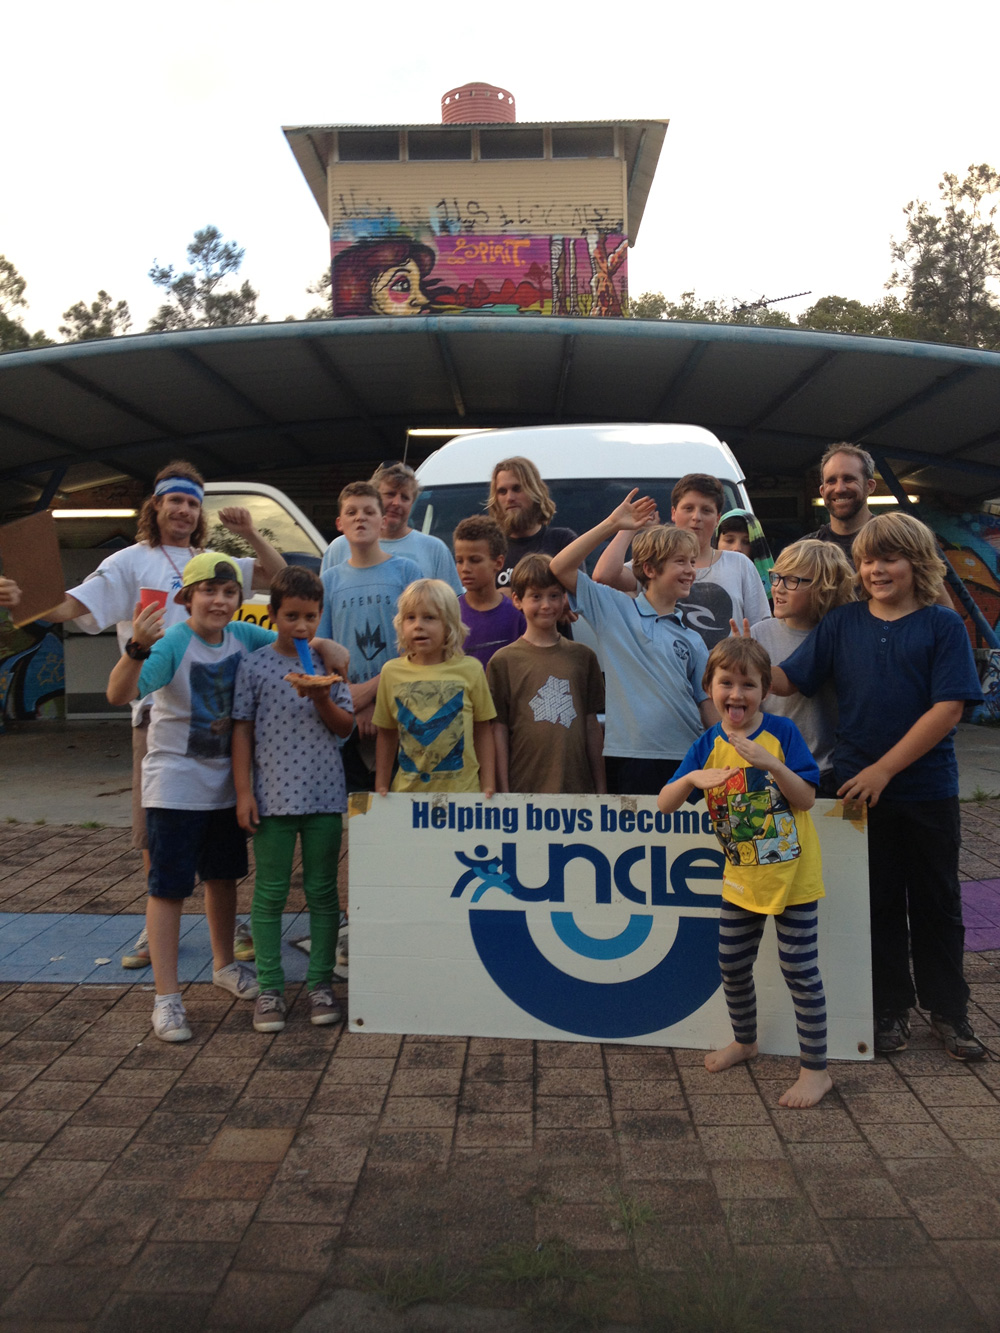 Uncle-Project-Byron-Bay-Group-2014-11-28-18.47.19